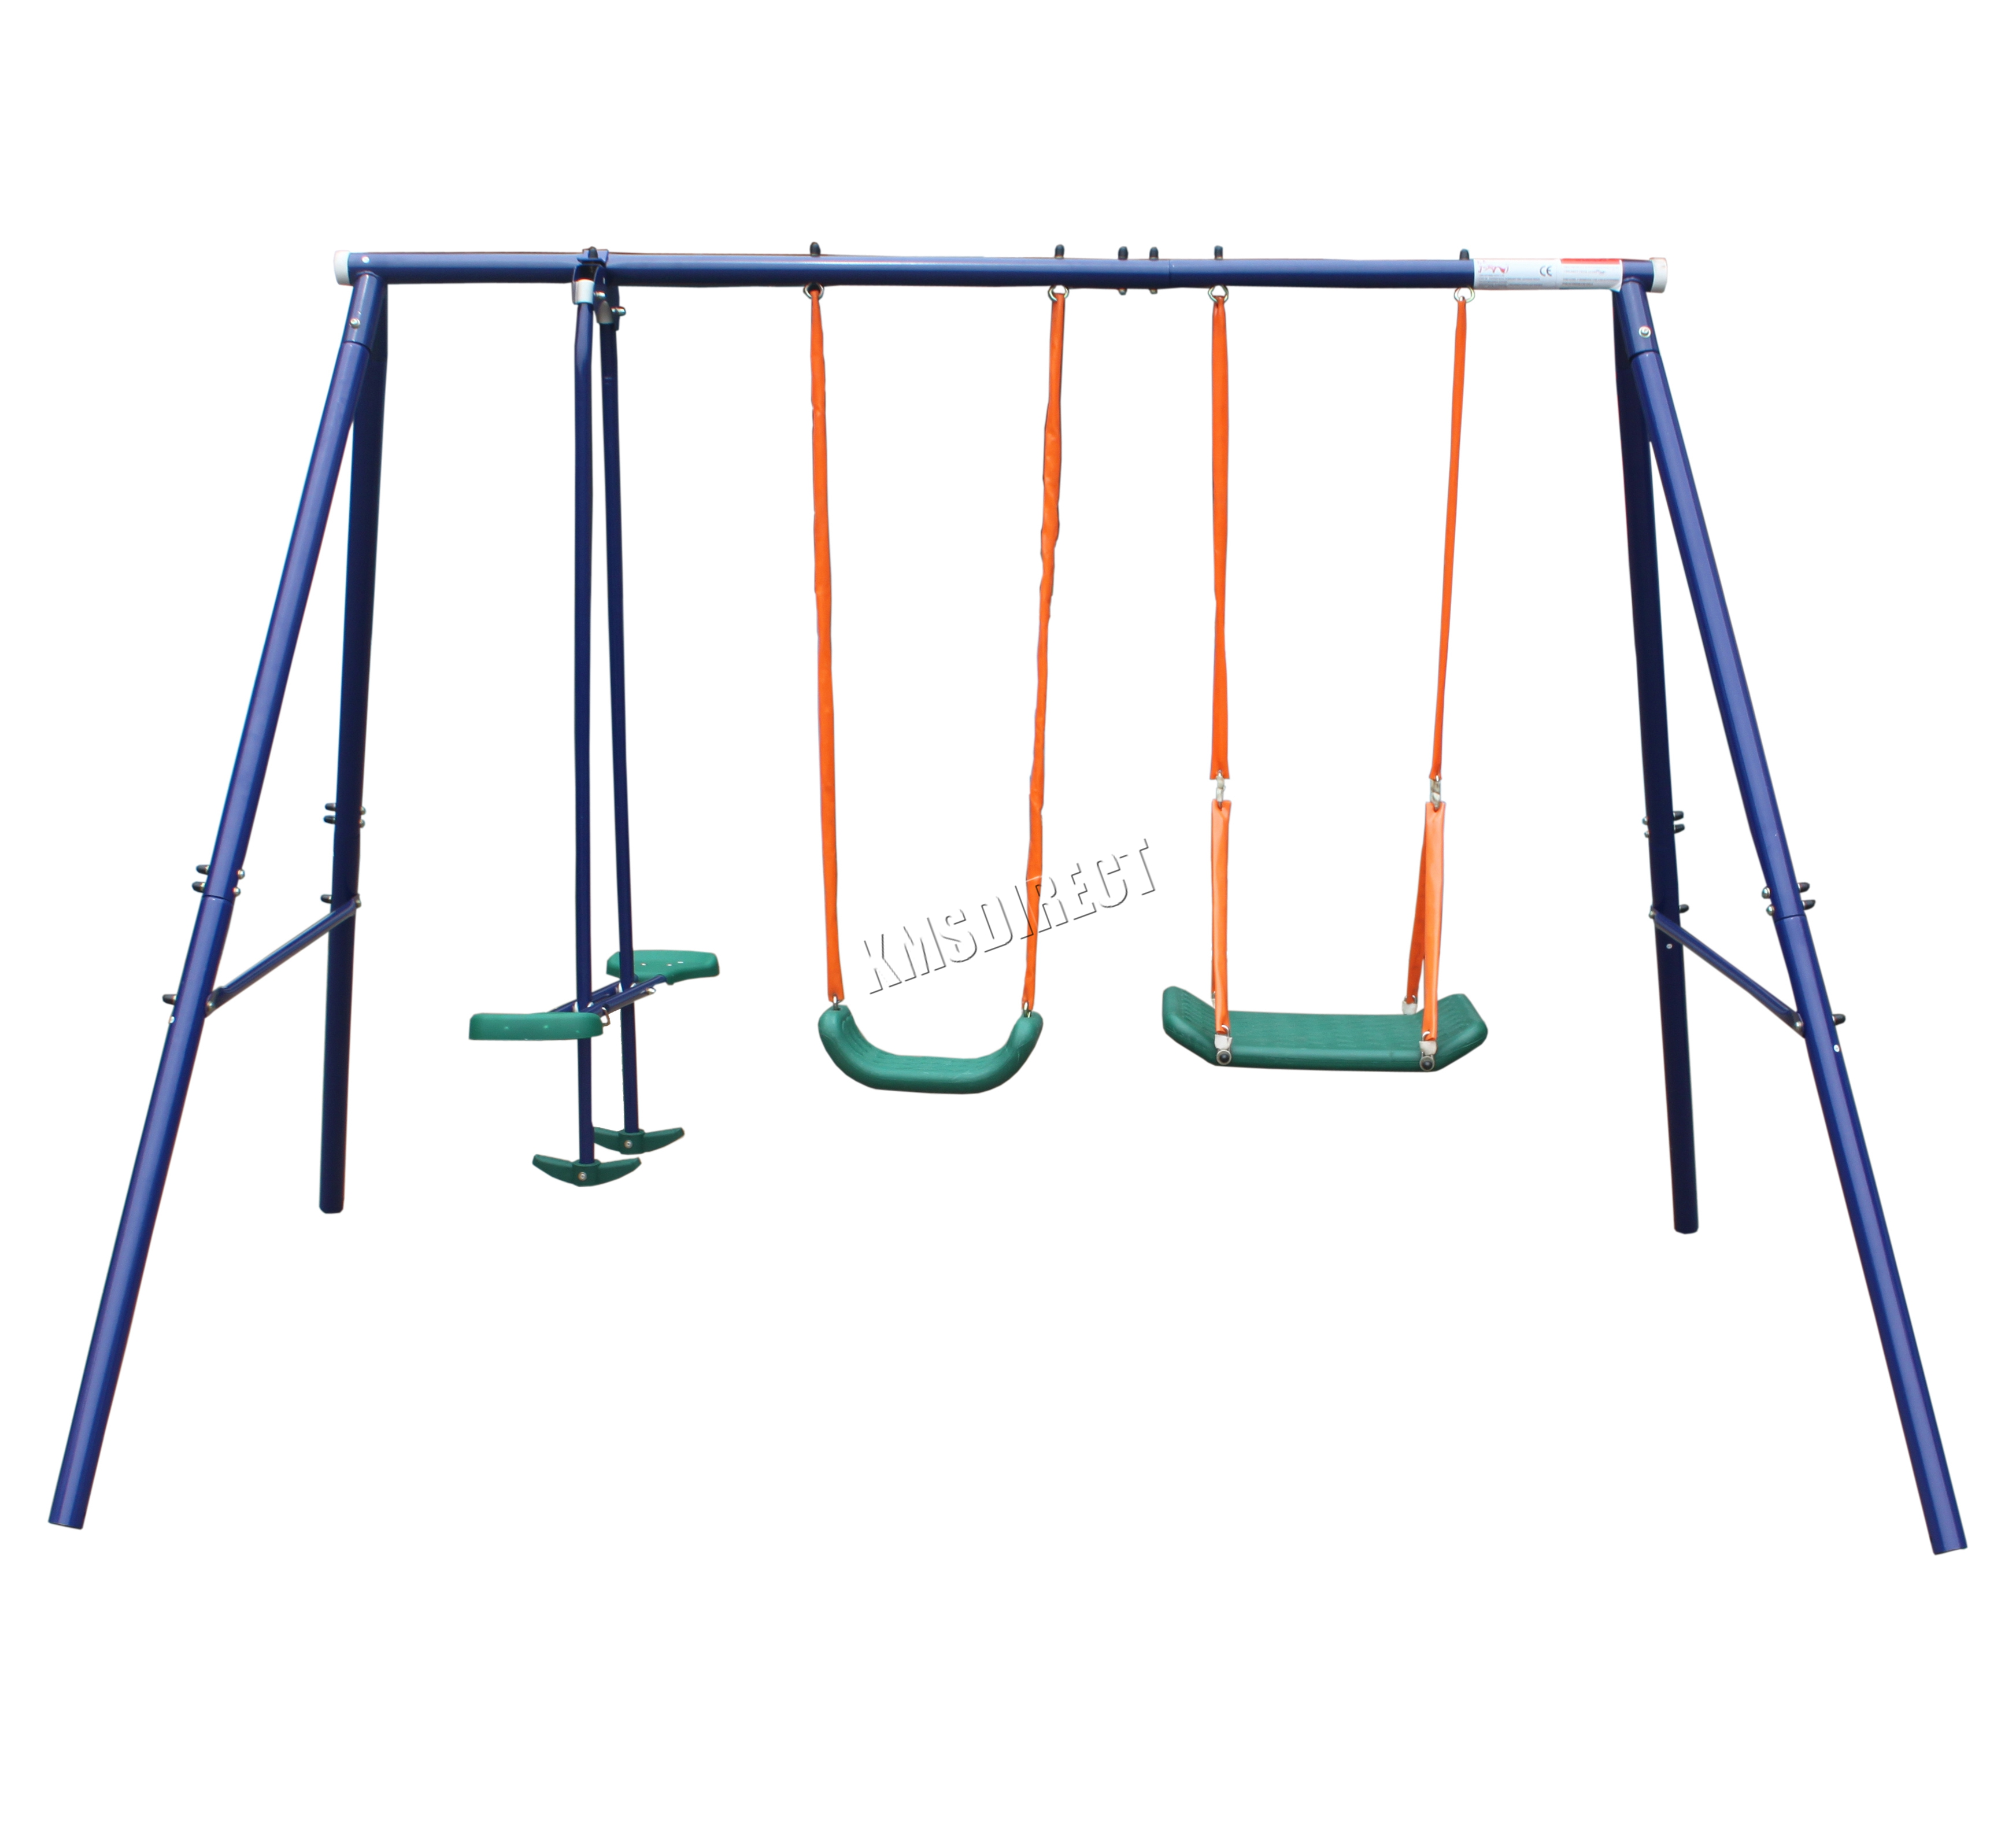 FoxHunter Kids Children Garden Metal Frame Double Seat Swing Set